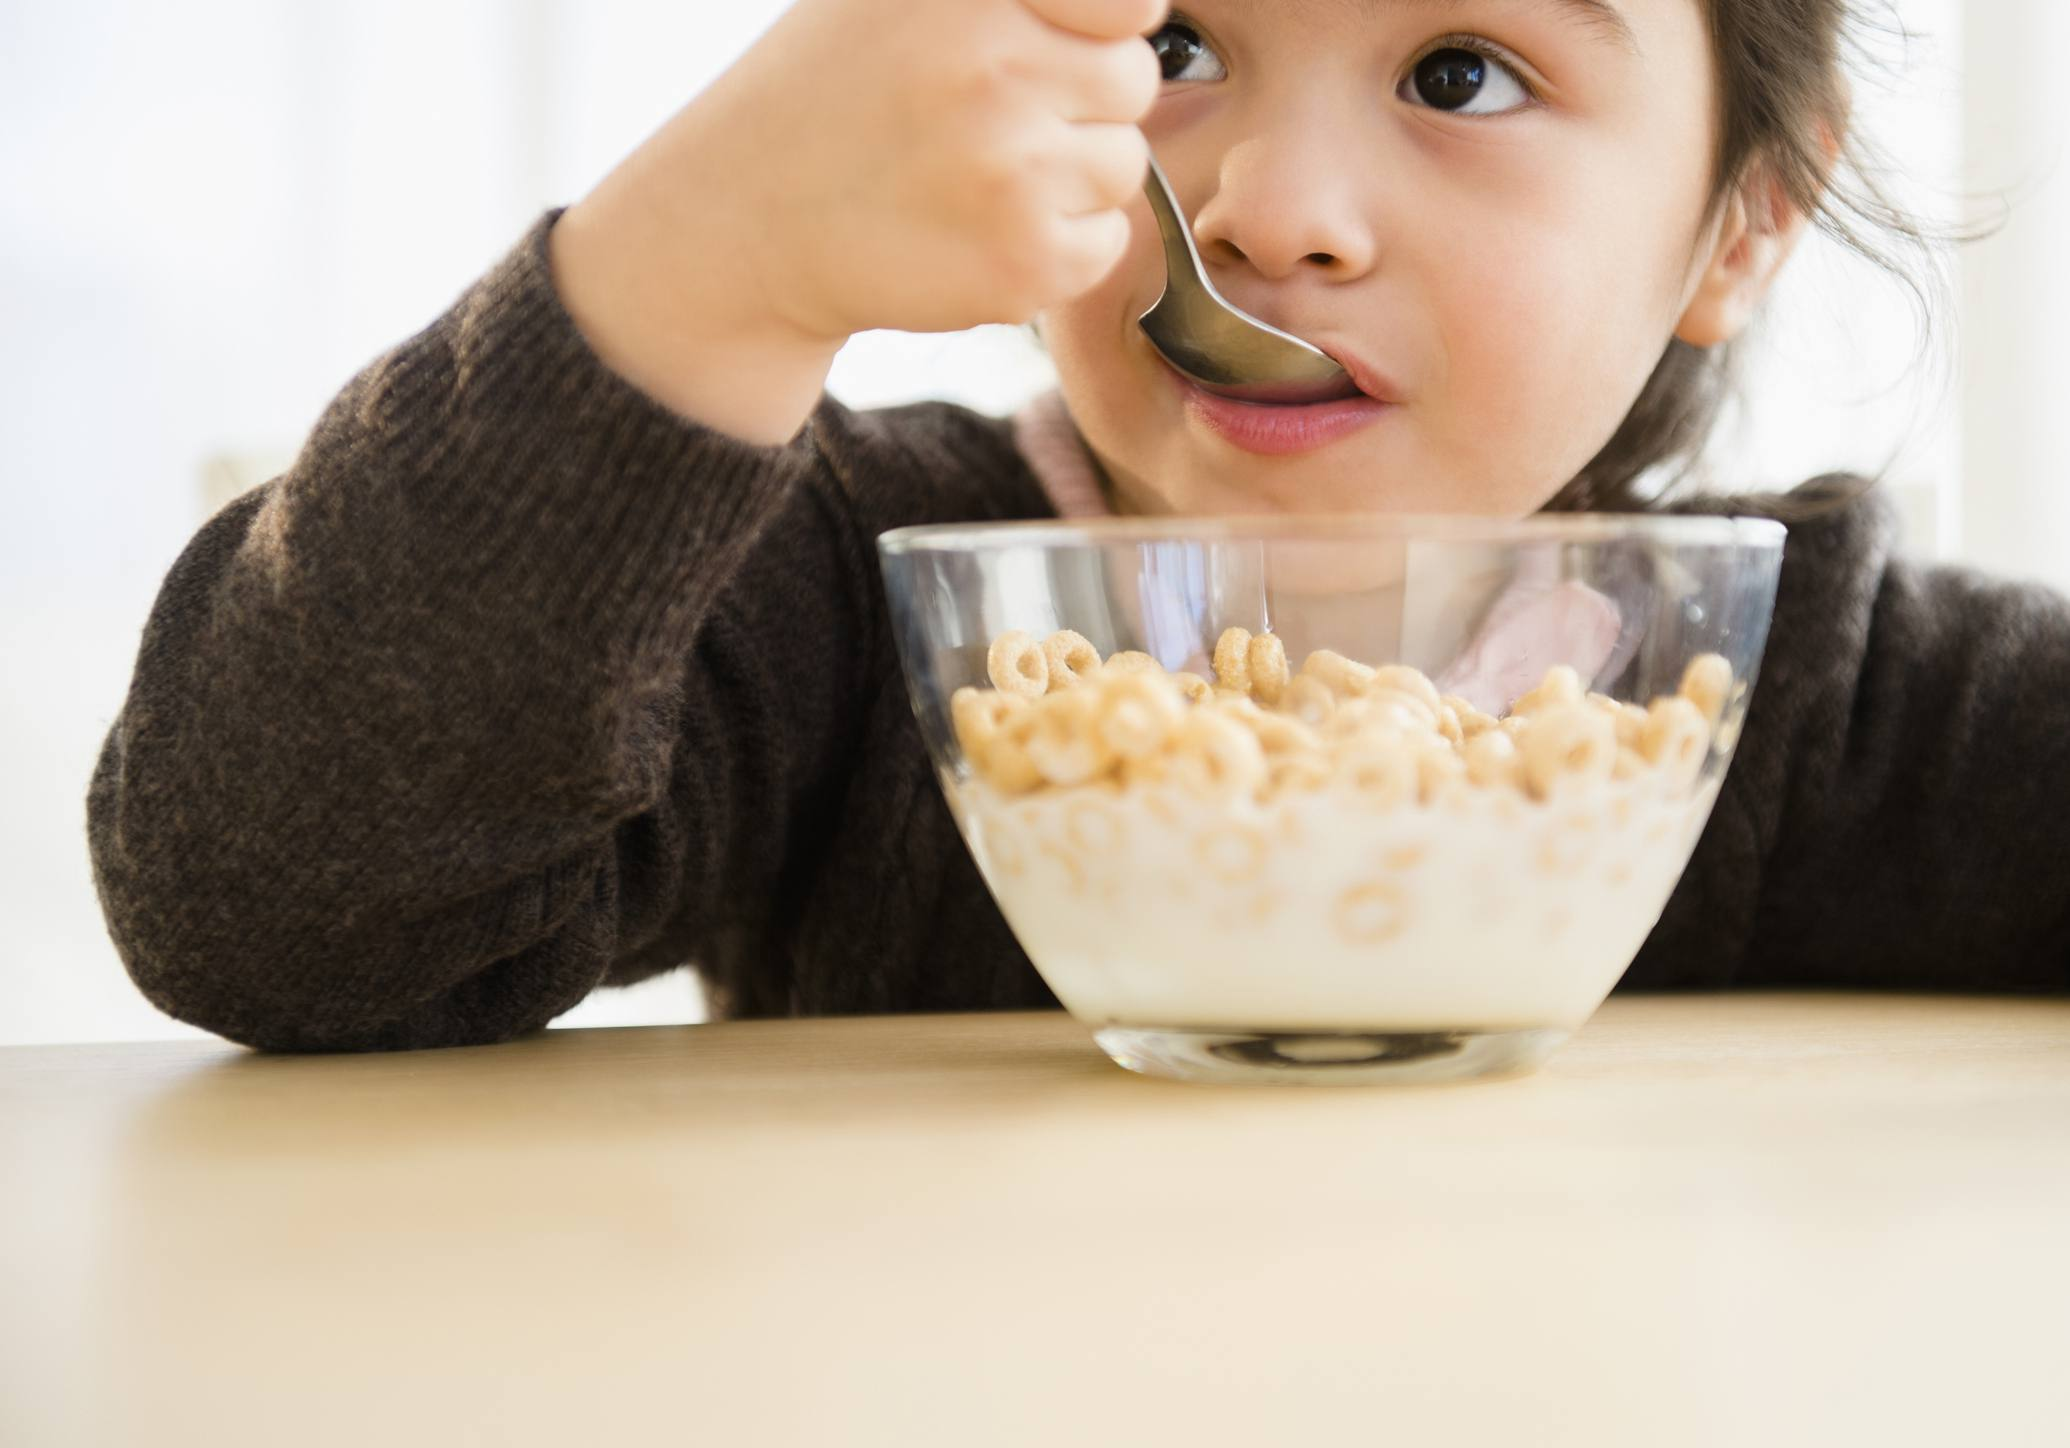 Kid Eating a Bowl of Cereal